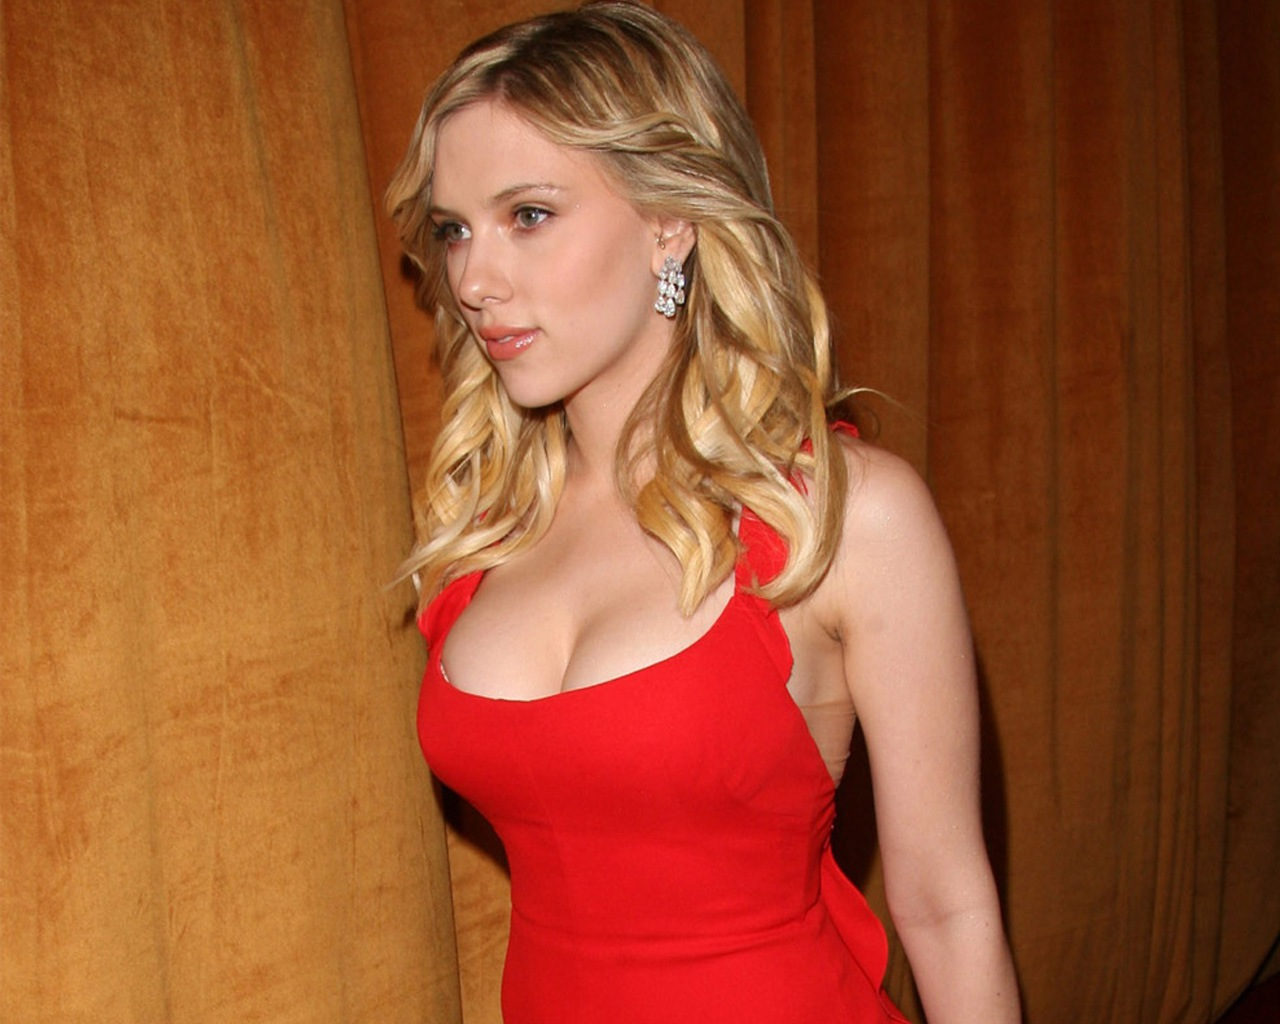 scarlett johansson hot hd - photo #22